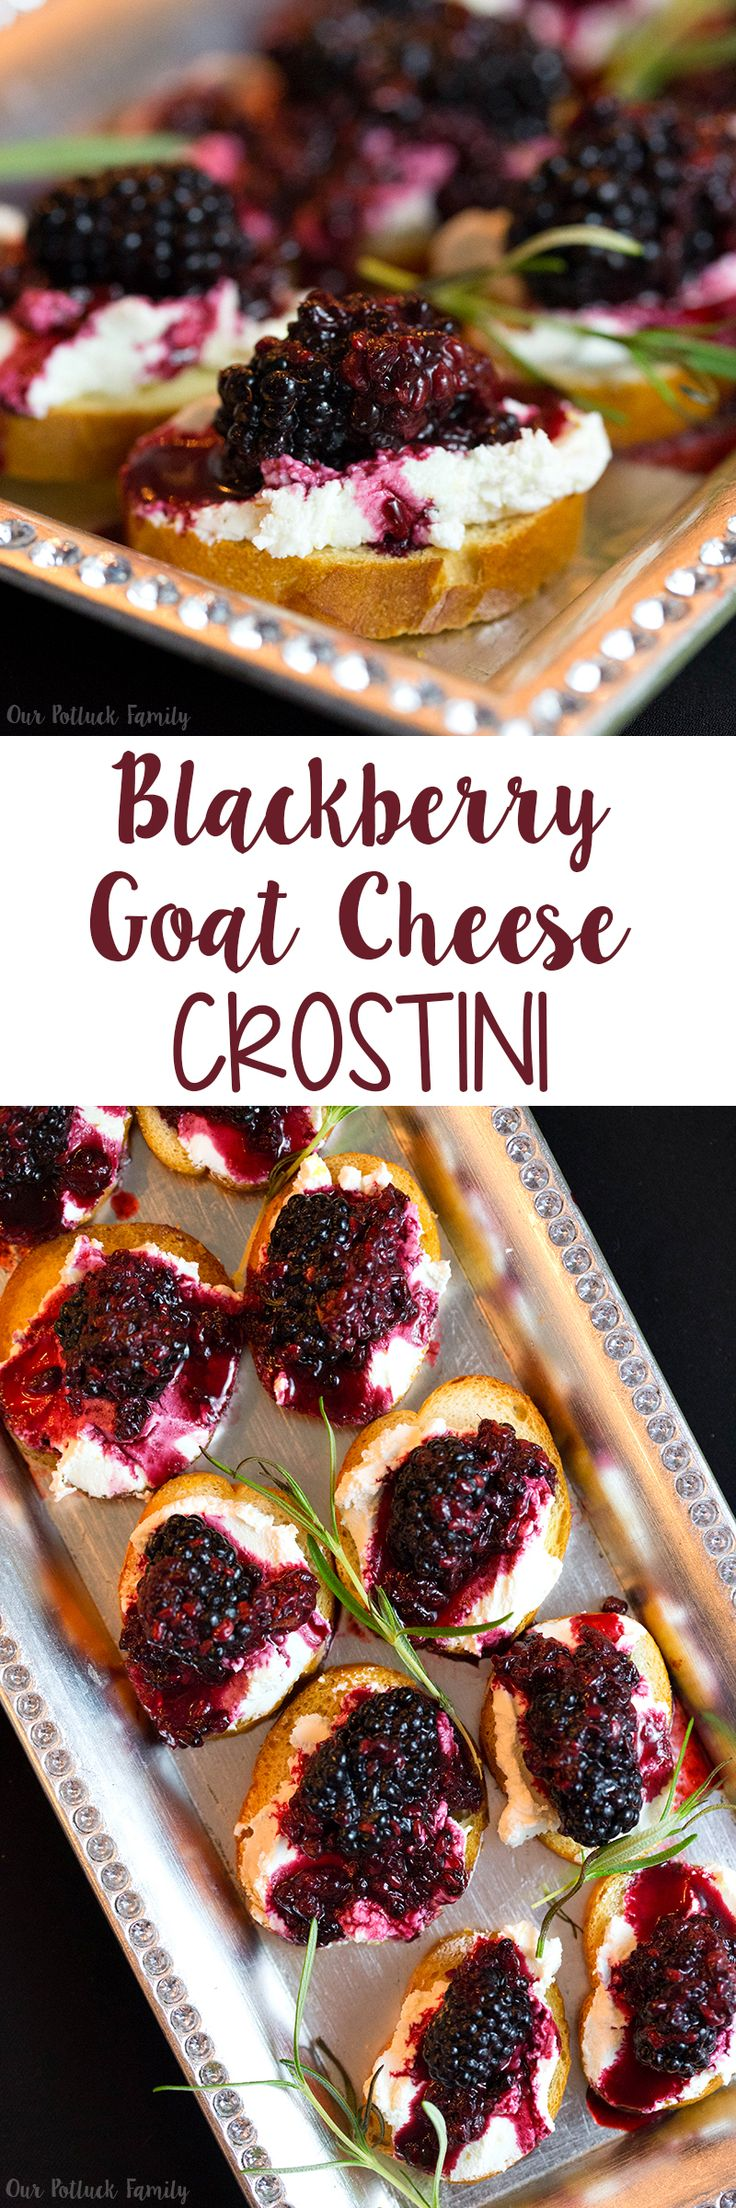 Fun ideas to set up a Speakeasy Party with a Chardonnay tasting paired with a delicious Blackberry Goat Cheese Crostini appetizer.